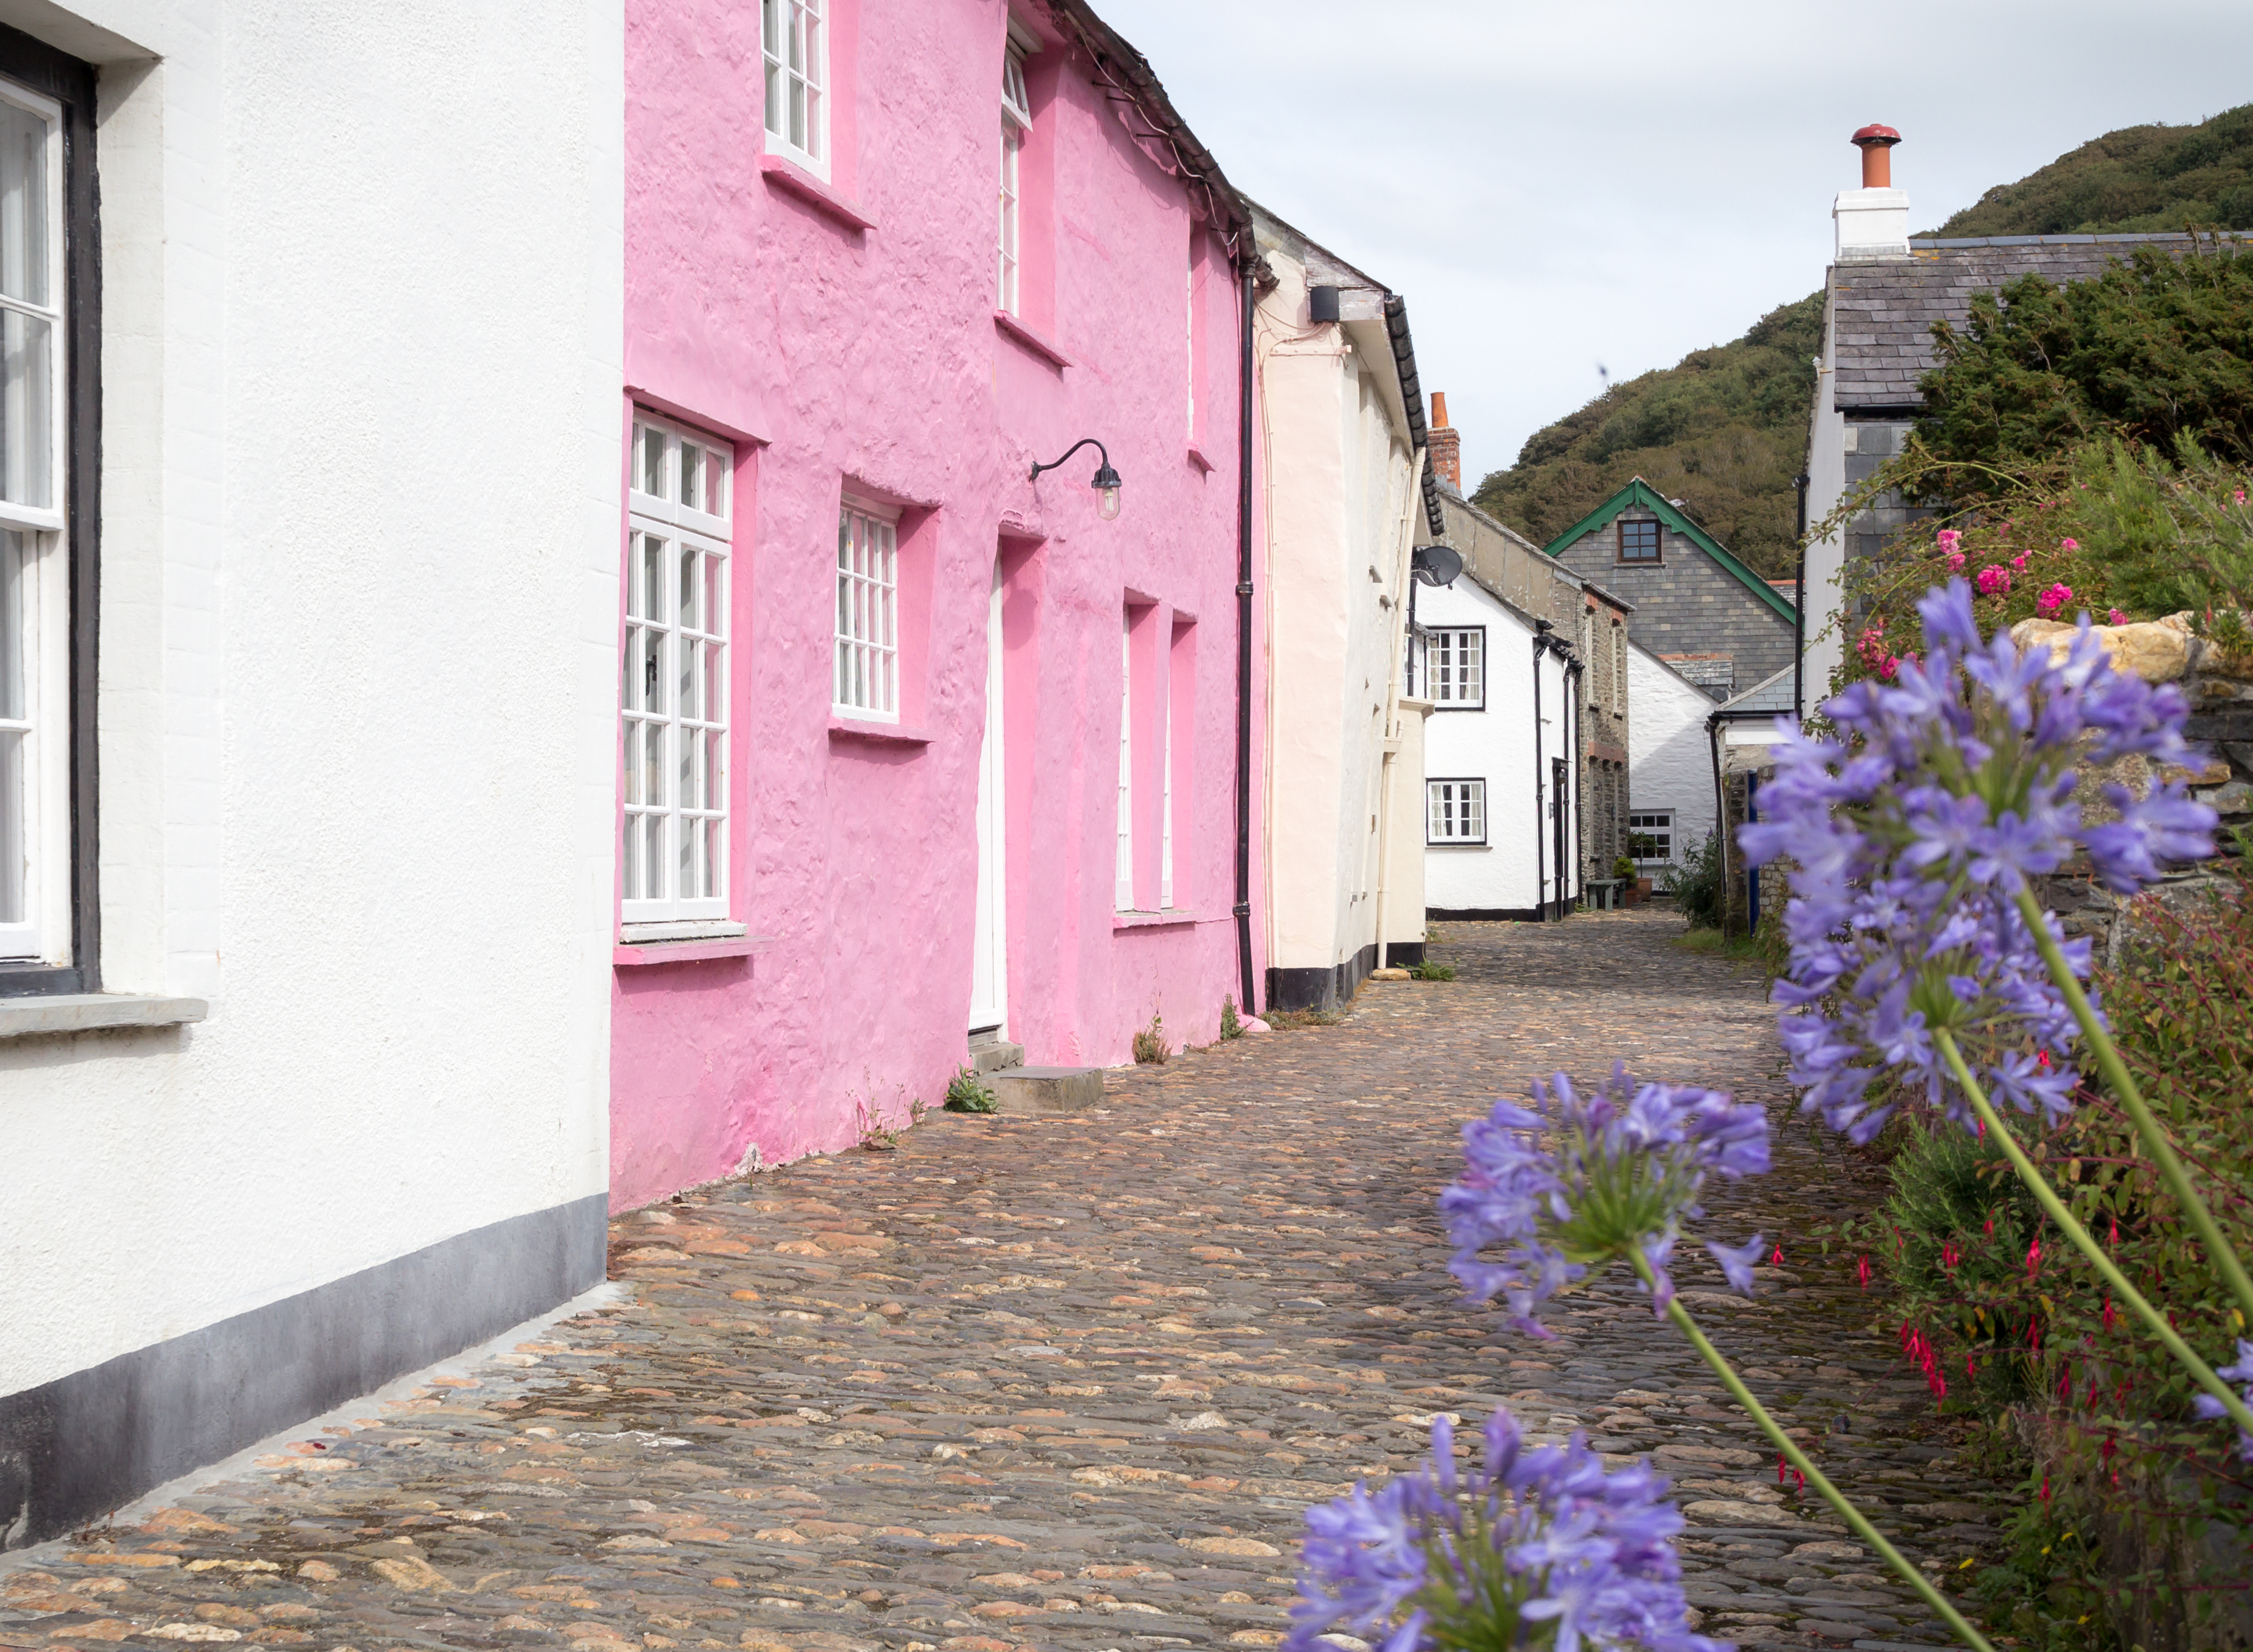 pretty pink house in coastal village with flowers